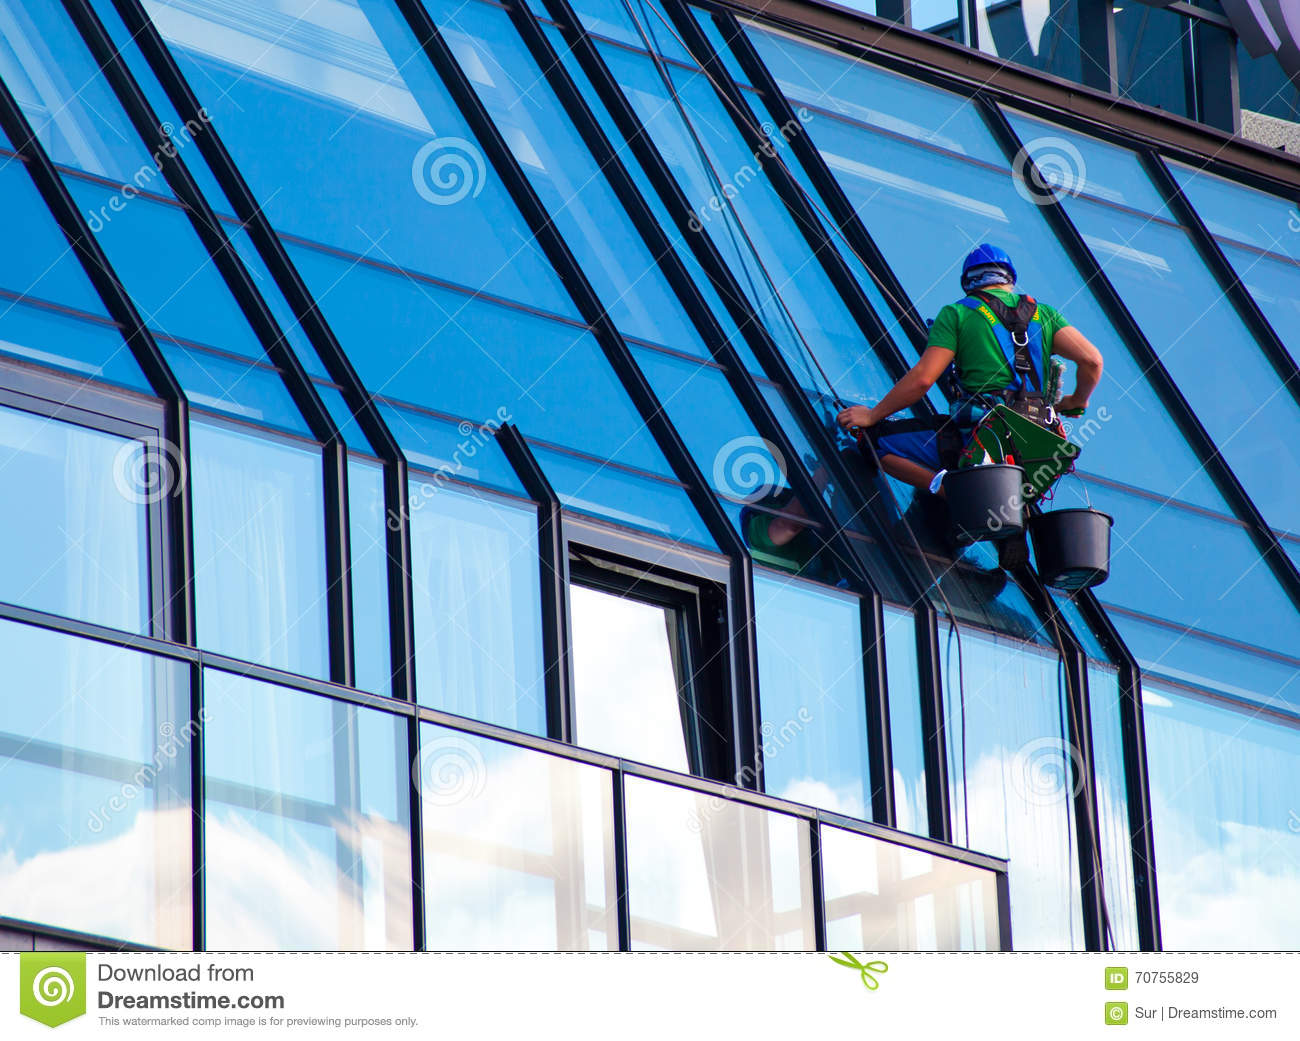 download window cleaner job description nondestructive tester windows cleaner work washing mordern building 70755829 download window - Window Cleaner Job Description